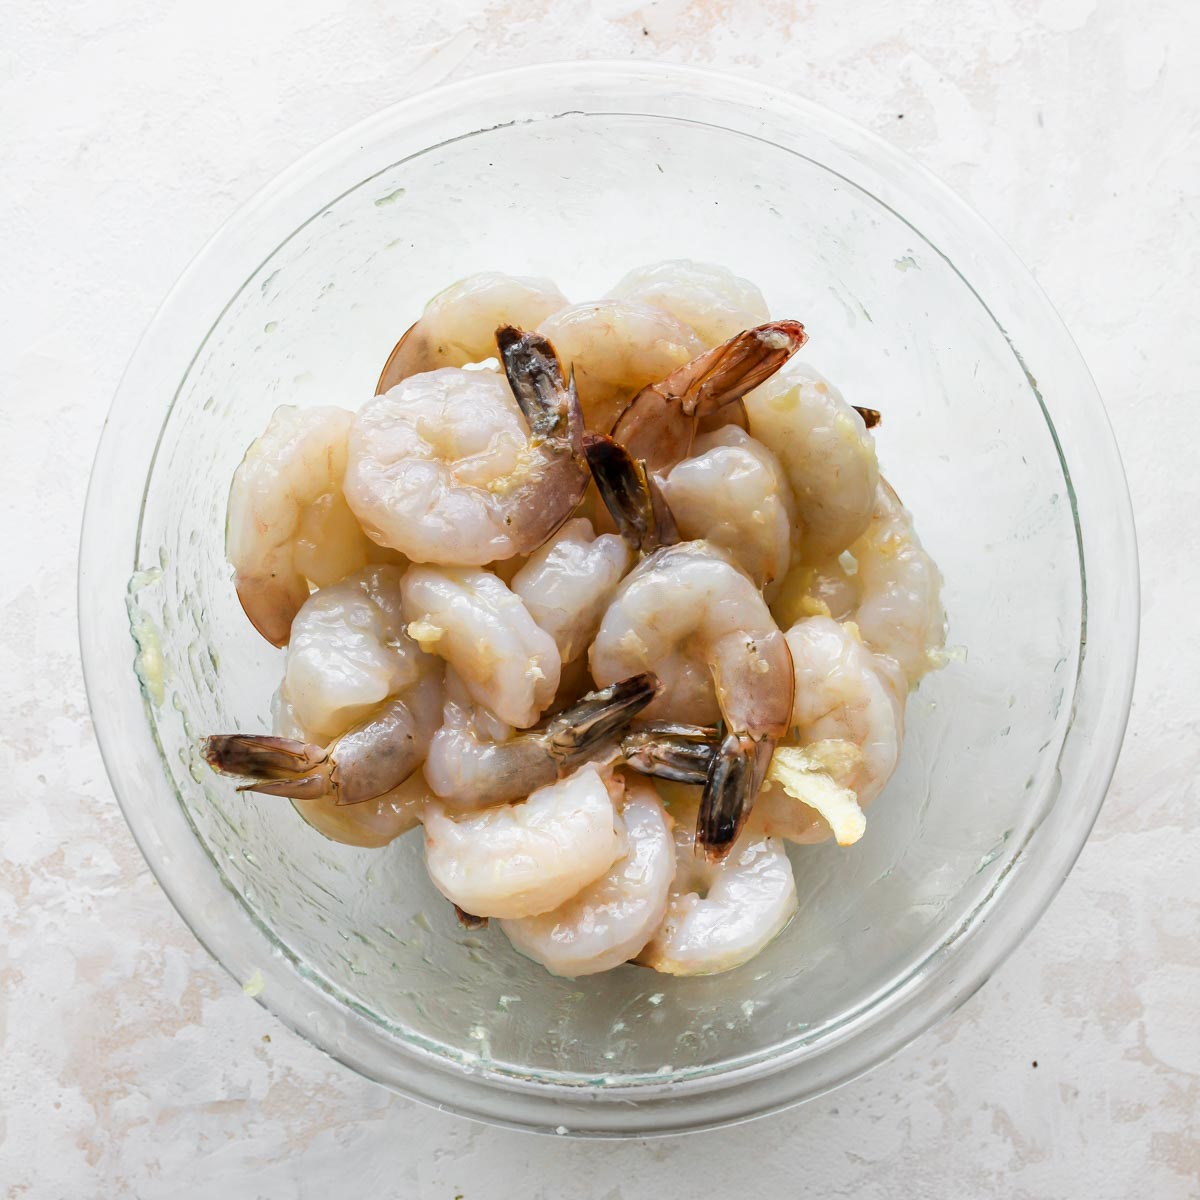 Shrimp being marinated in olive oil and garlic in a bowl